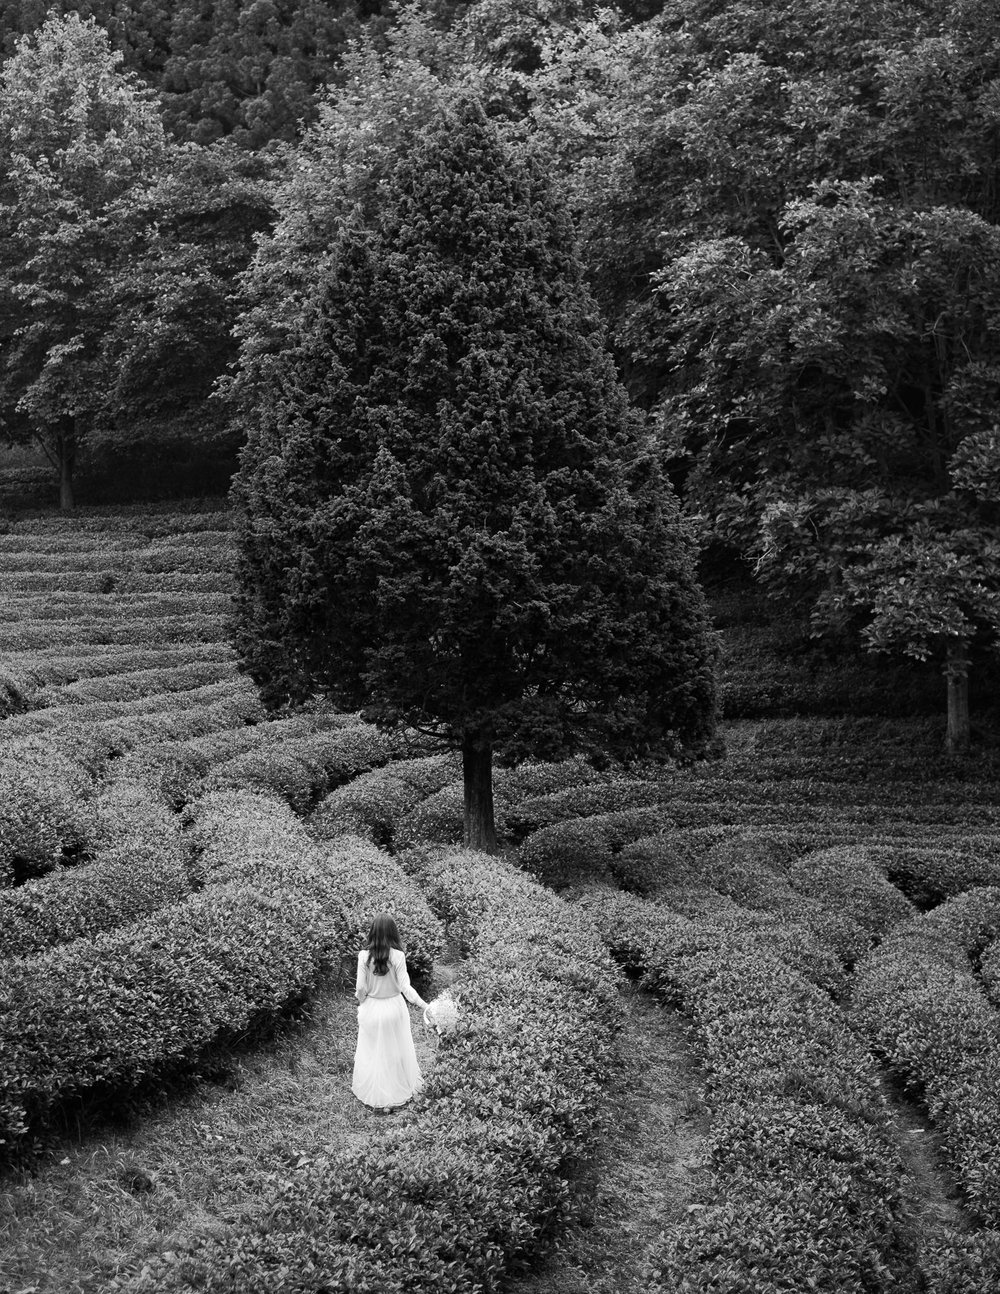 bw-girl-tree-green-tea-fields-korea.jpg